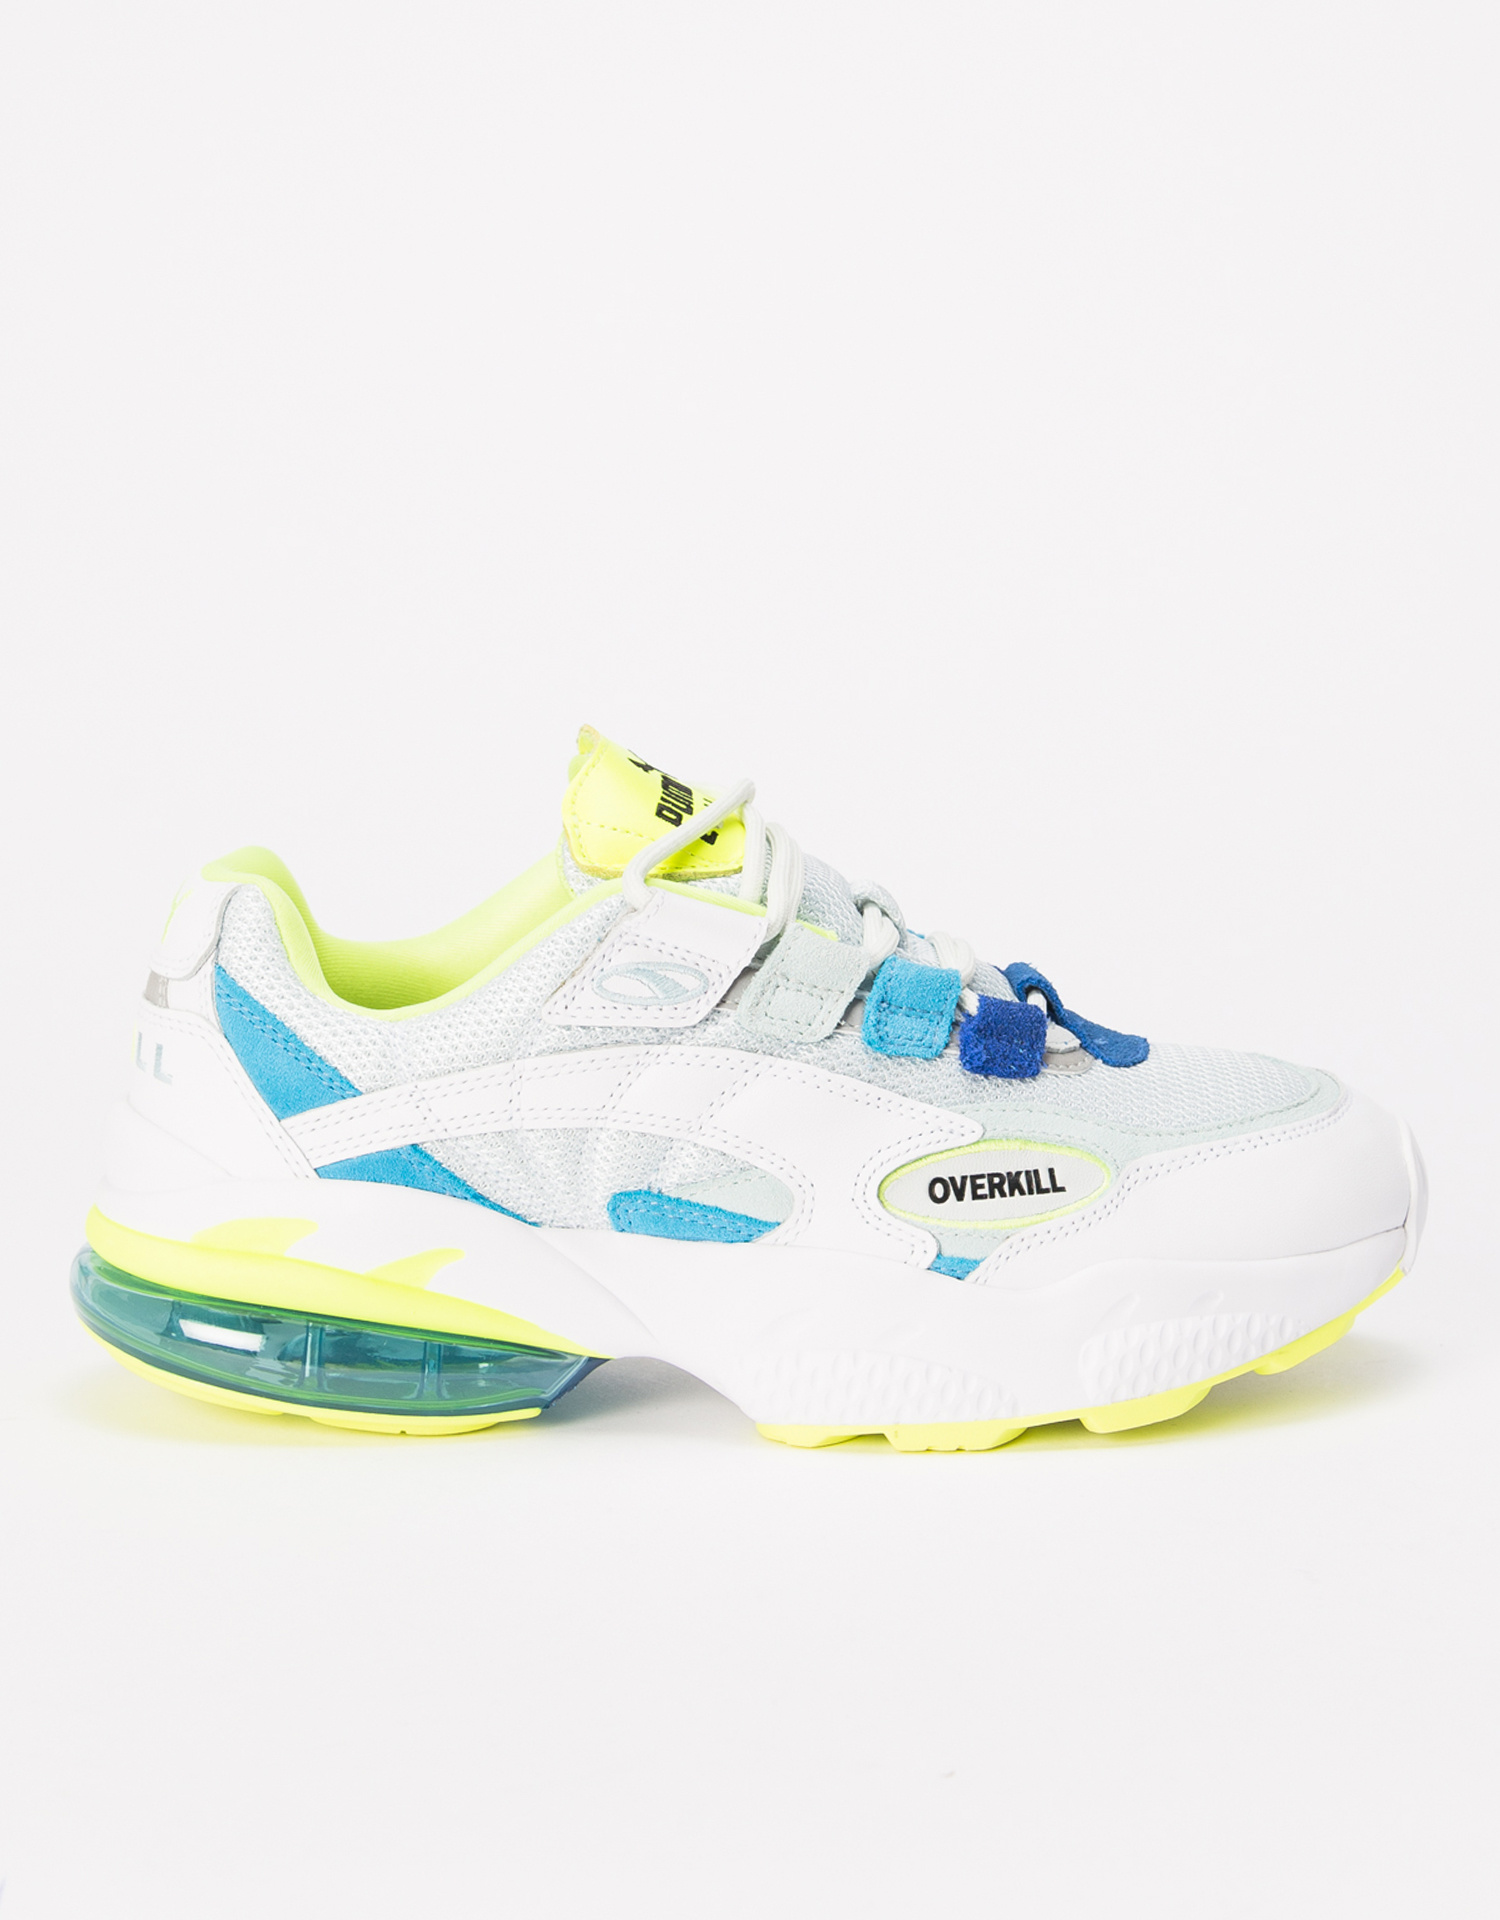 Puma Cell Venom x Overkill Illusion Blue/ Puma White